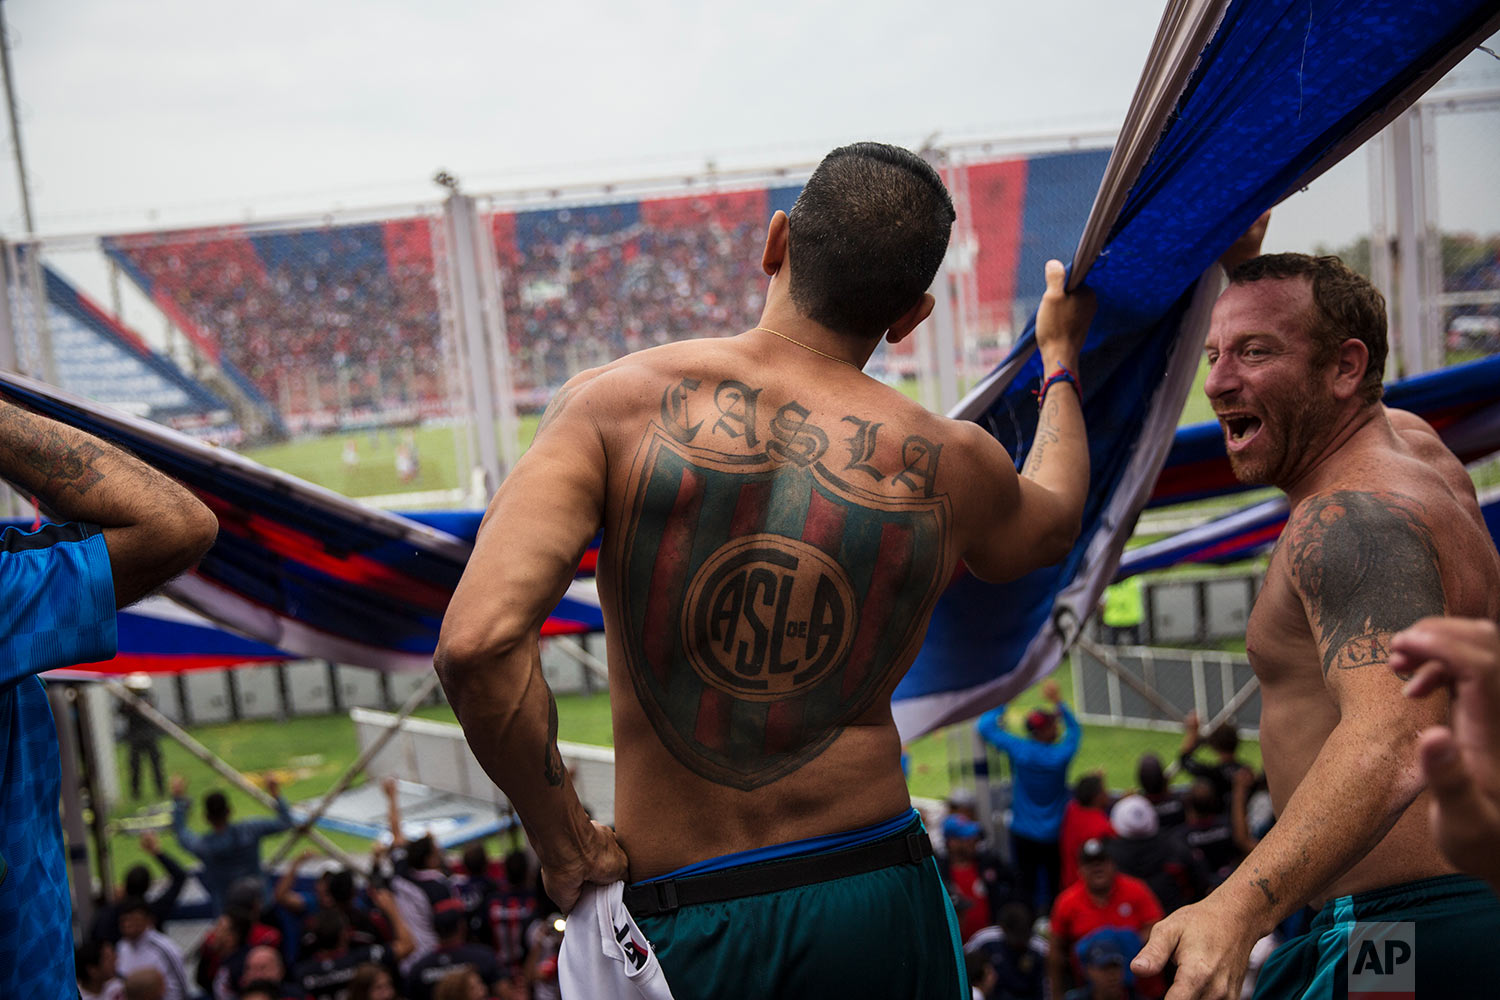 """In this April 8, 2018 photo, San Lorenzo soccer fans who are part of the team's most militant fan base, coined """"La Butteler,"""" sing and dance from the grandstand during a match against Godoy Cruz in Buenos Aires, Argentina. (AP Photo/Rodrigo Abd)"""